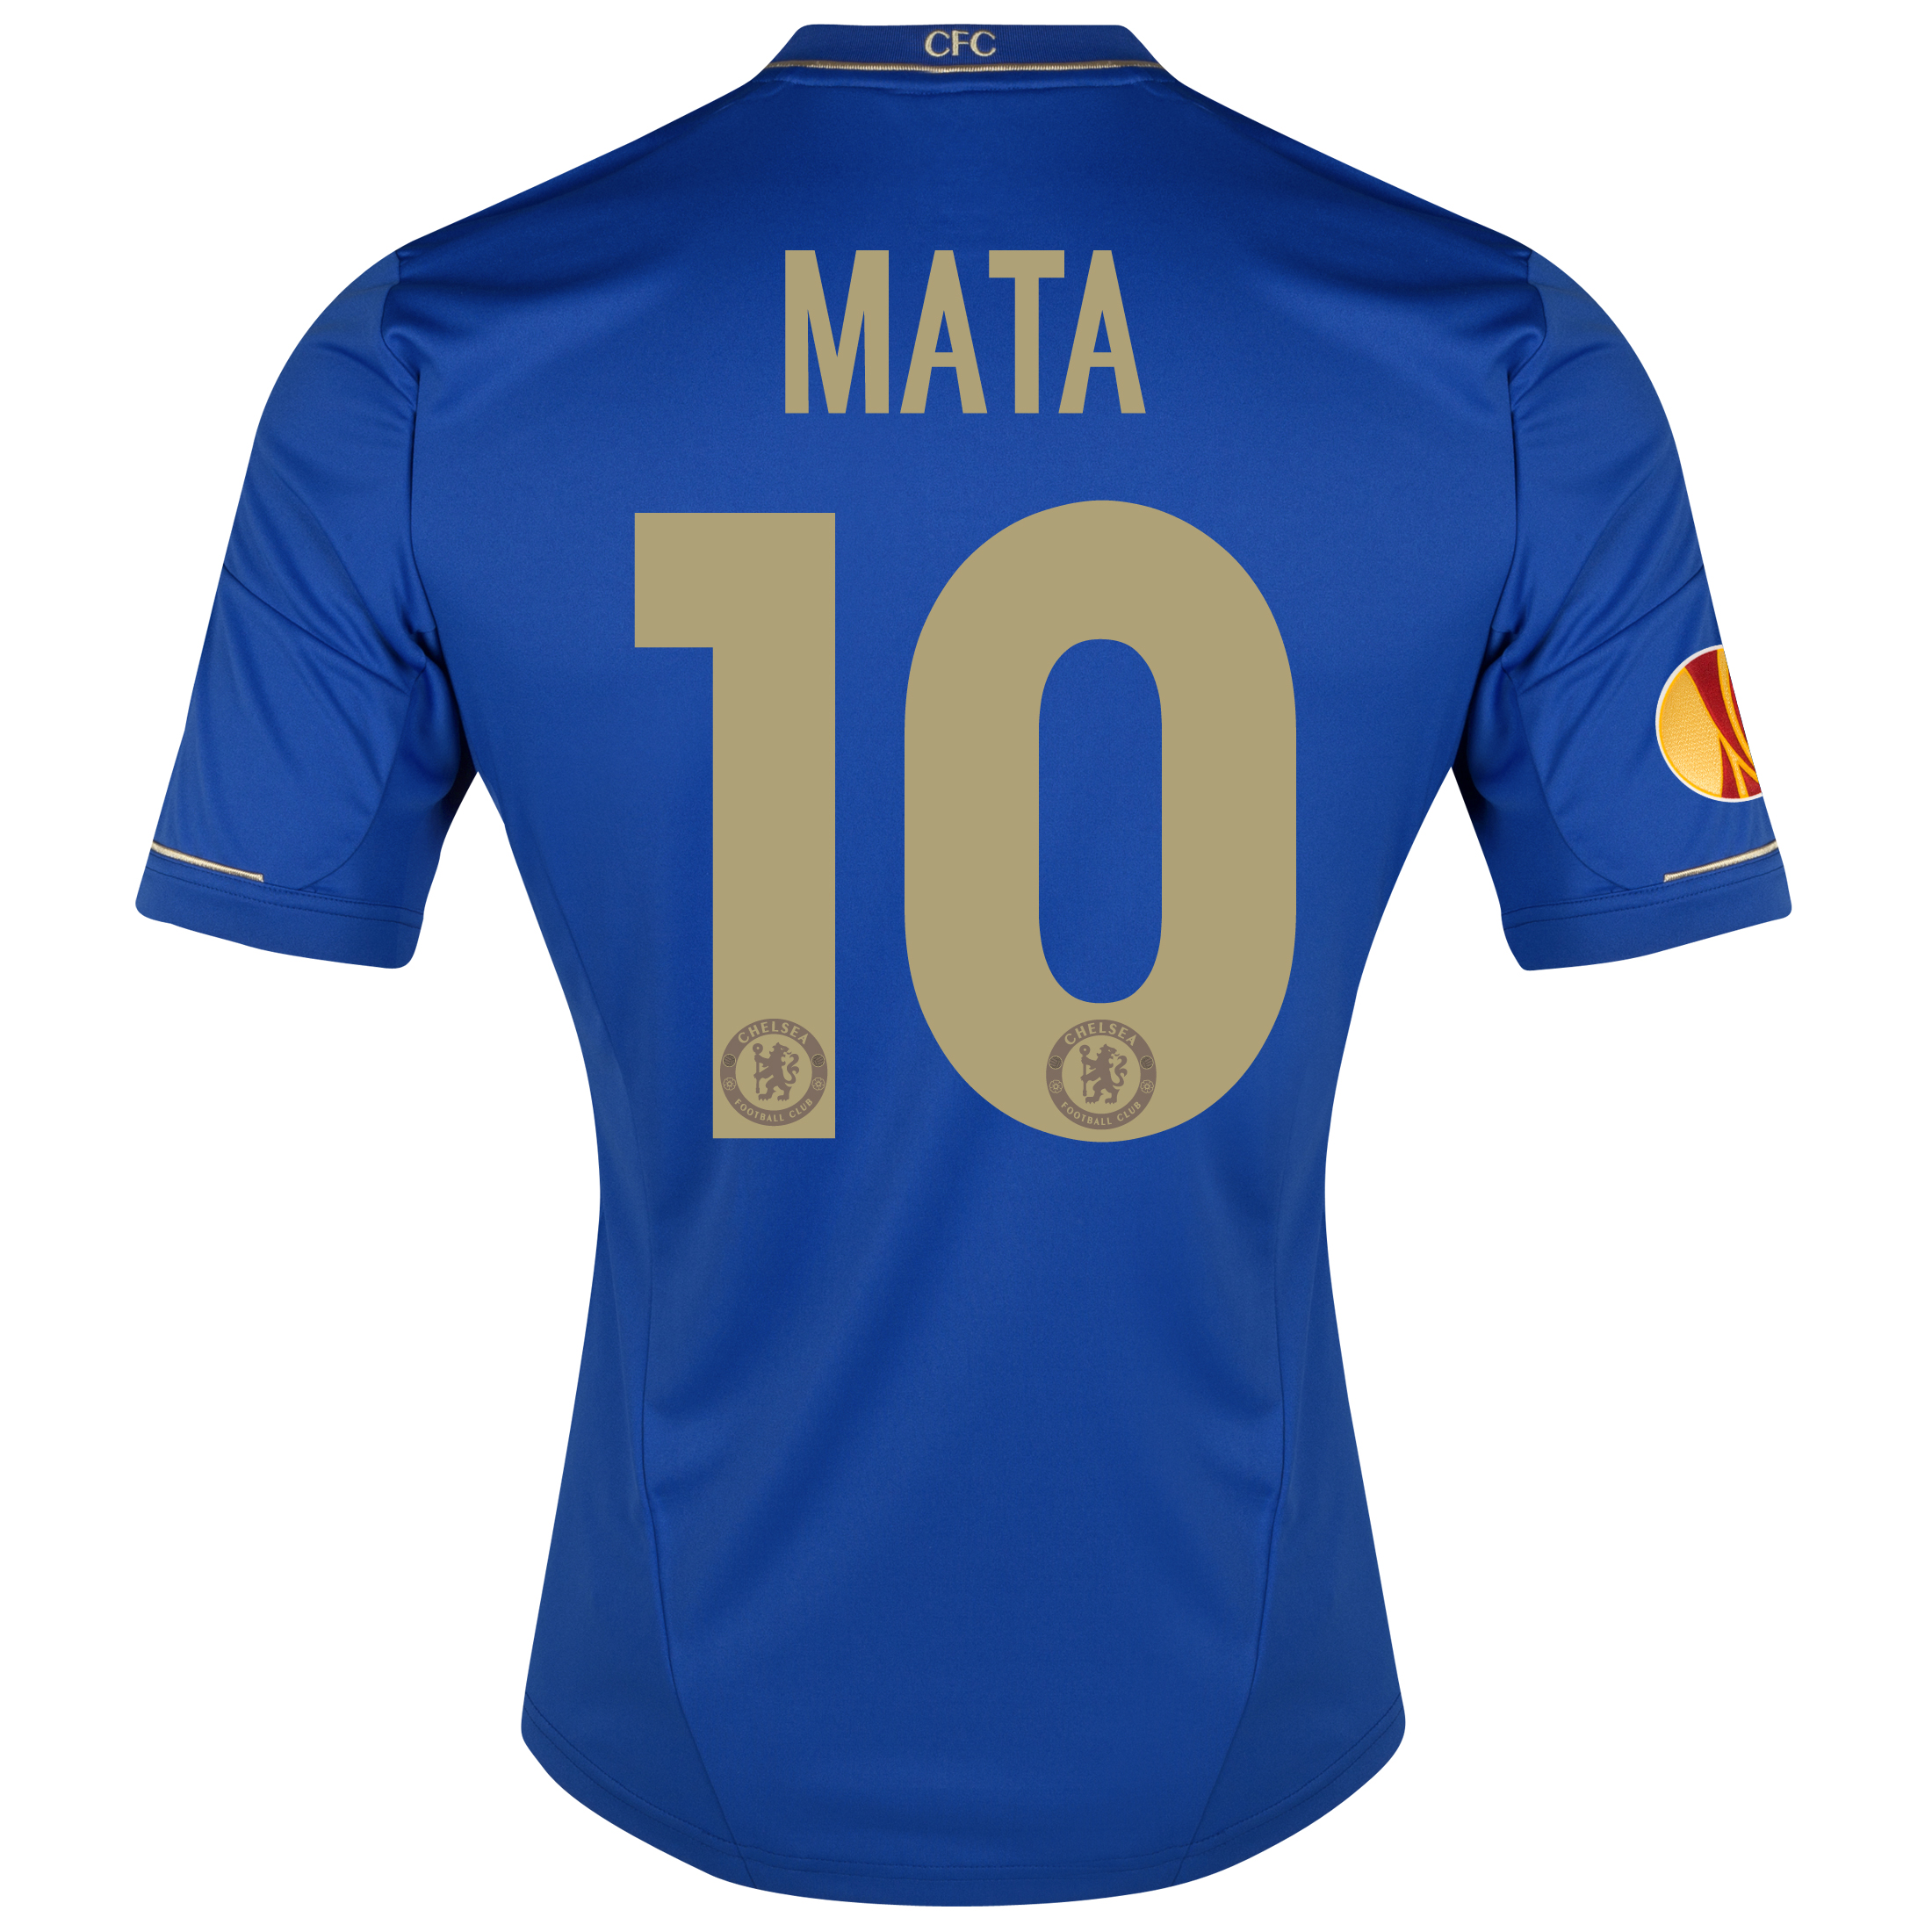 Chelsea UEFA Europa League Home Shirt 2012/13 - Youths with Mata 10 printing Including Europa Badge